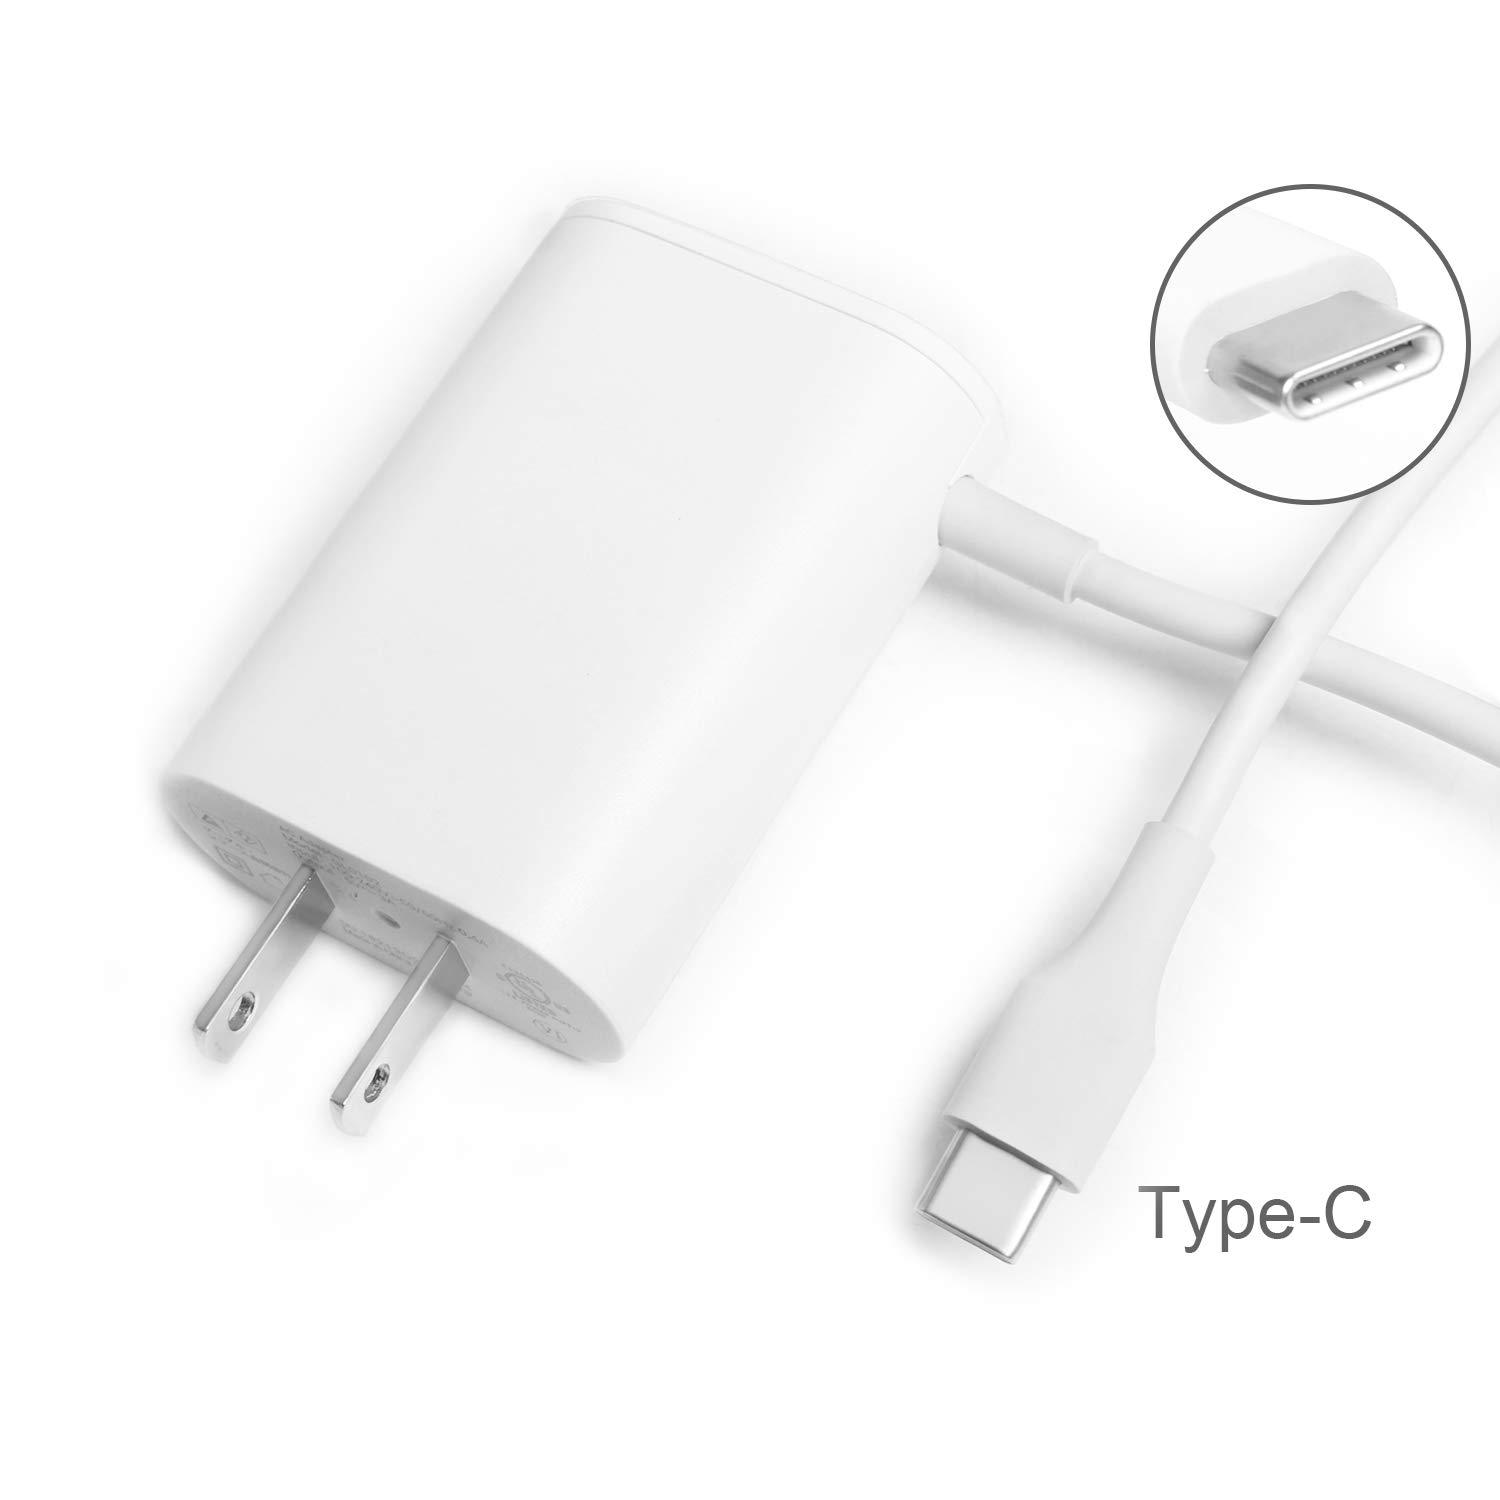 szhyon 5V 3A USB-c Charger Power Cable GL0102 GL0101 for Google Pixel 4 3 2 XL JBL Pulse 4 FLIP 5 Charge 4 Speaker Google WiFi